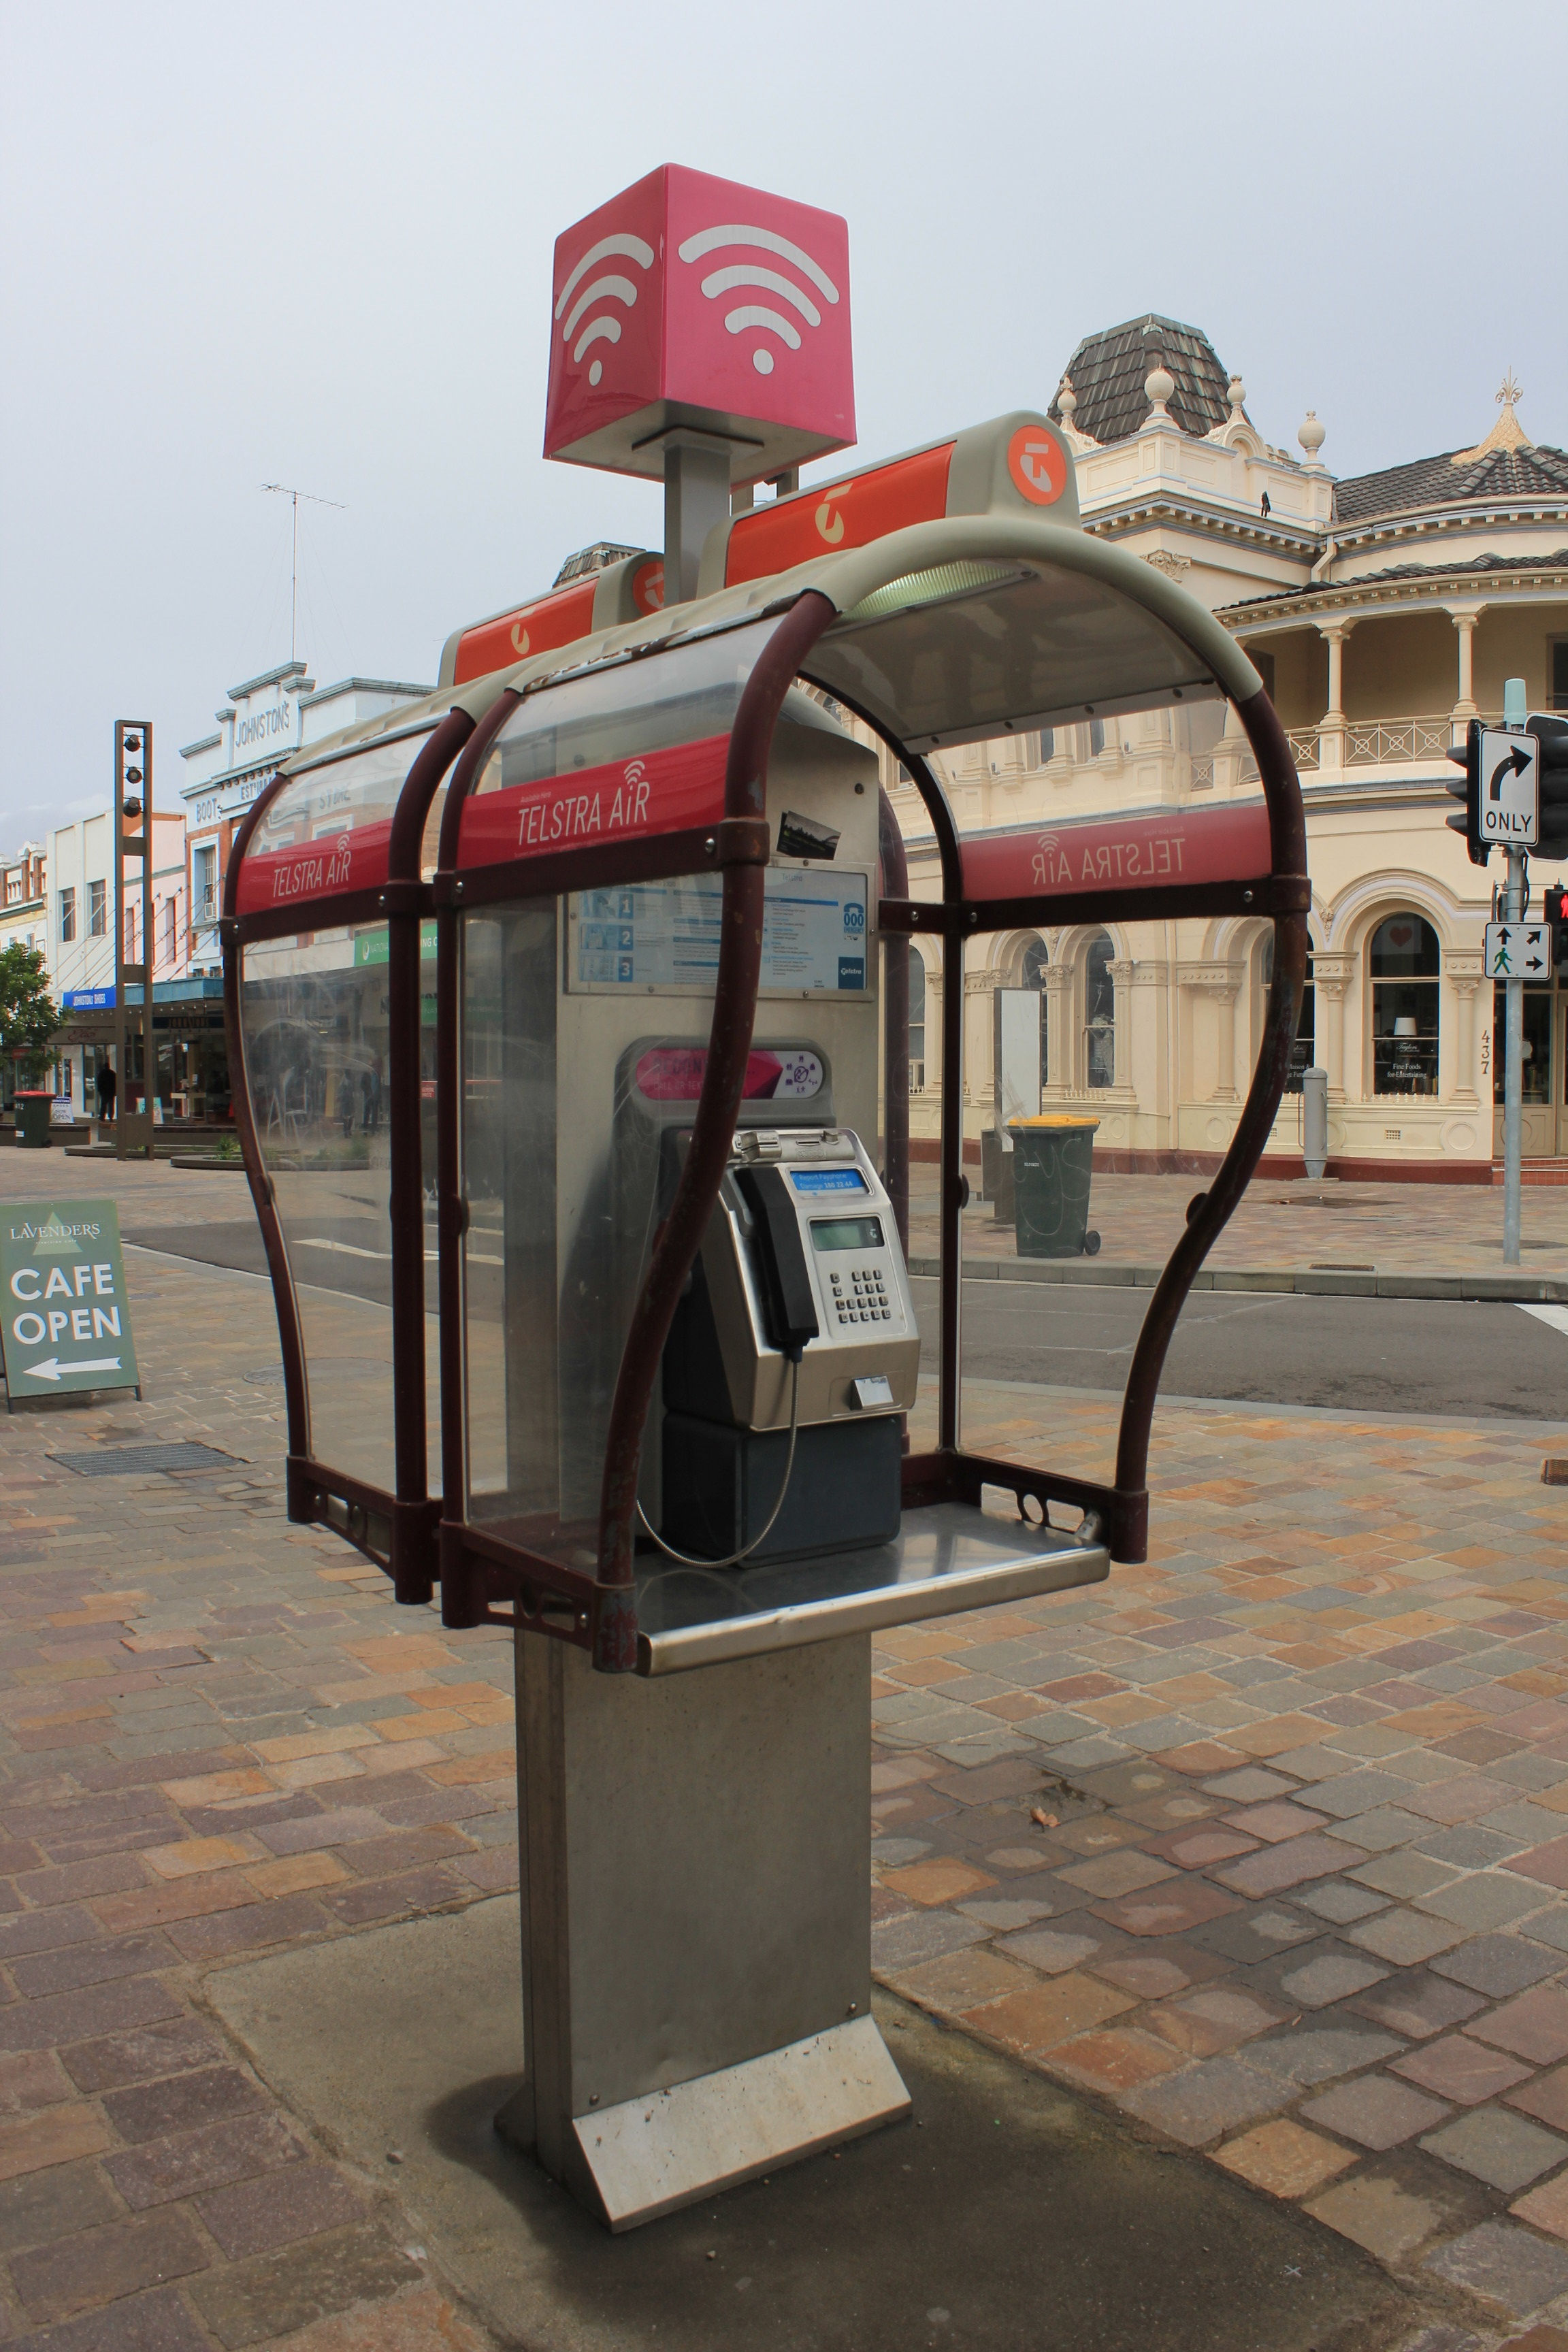 Telephone booth wikipedia a telstra payphone booth in australia that also serves as a wi fi hotspot to access the internet biocorpaavc Images